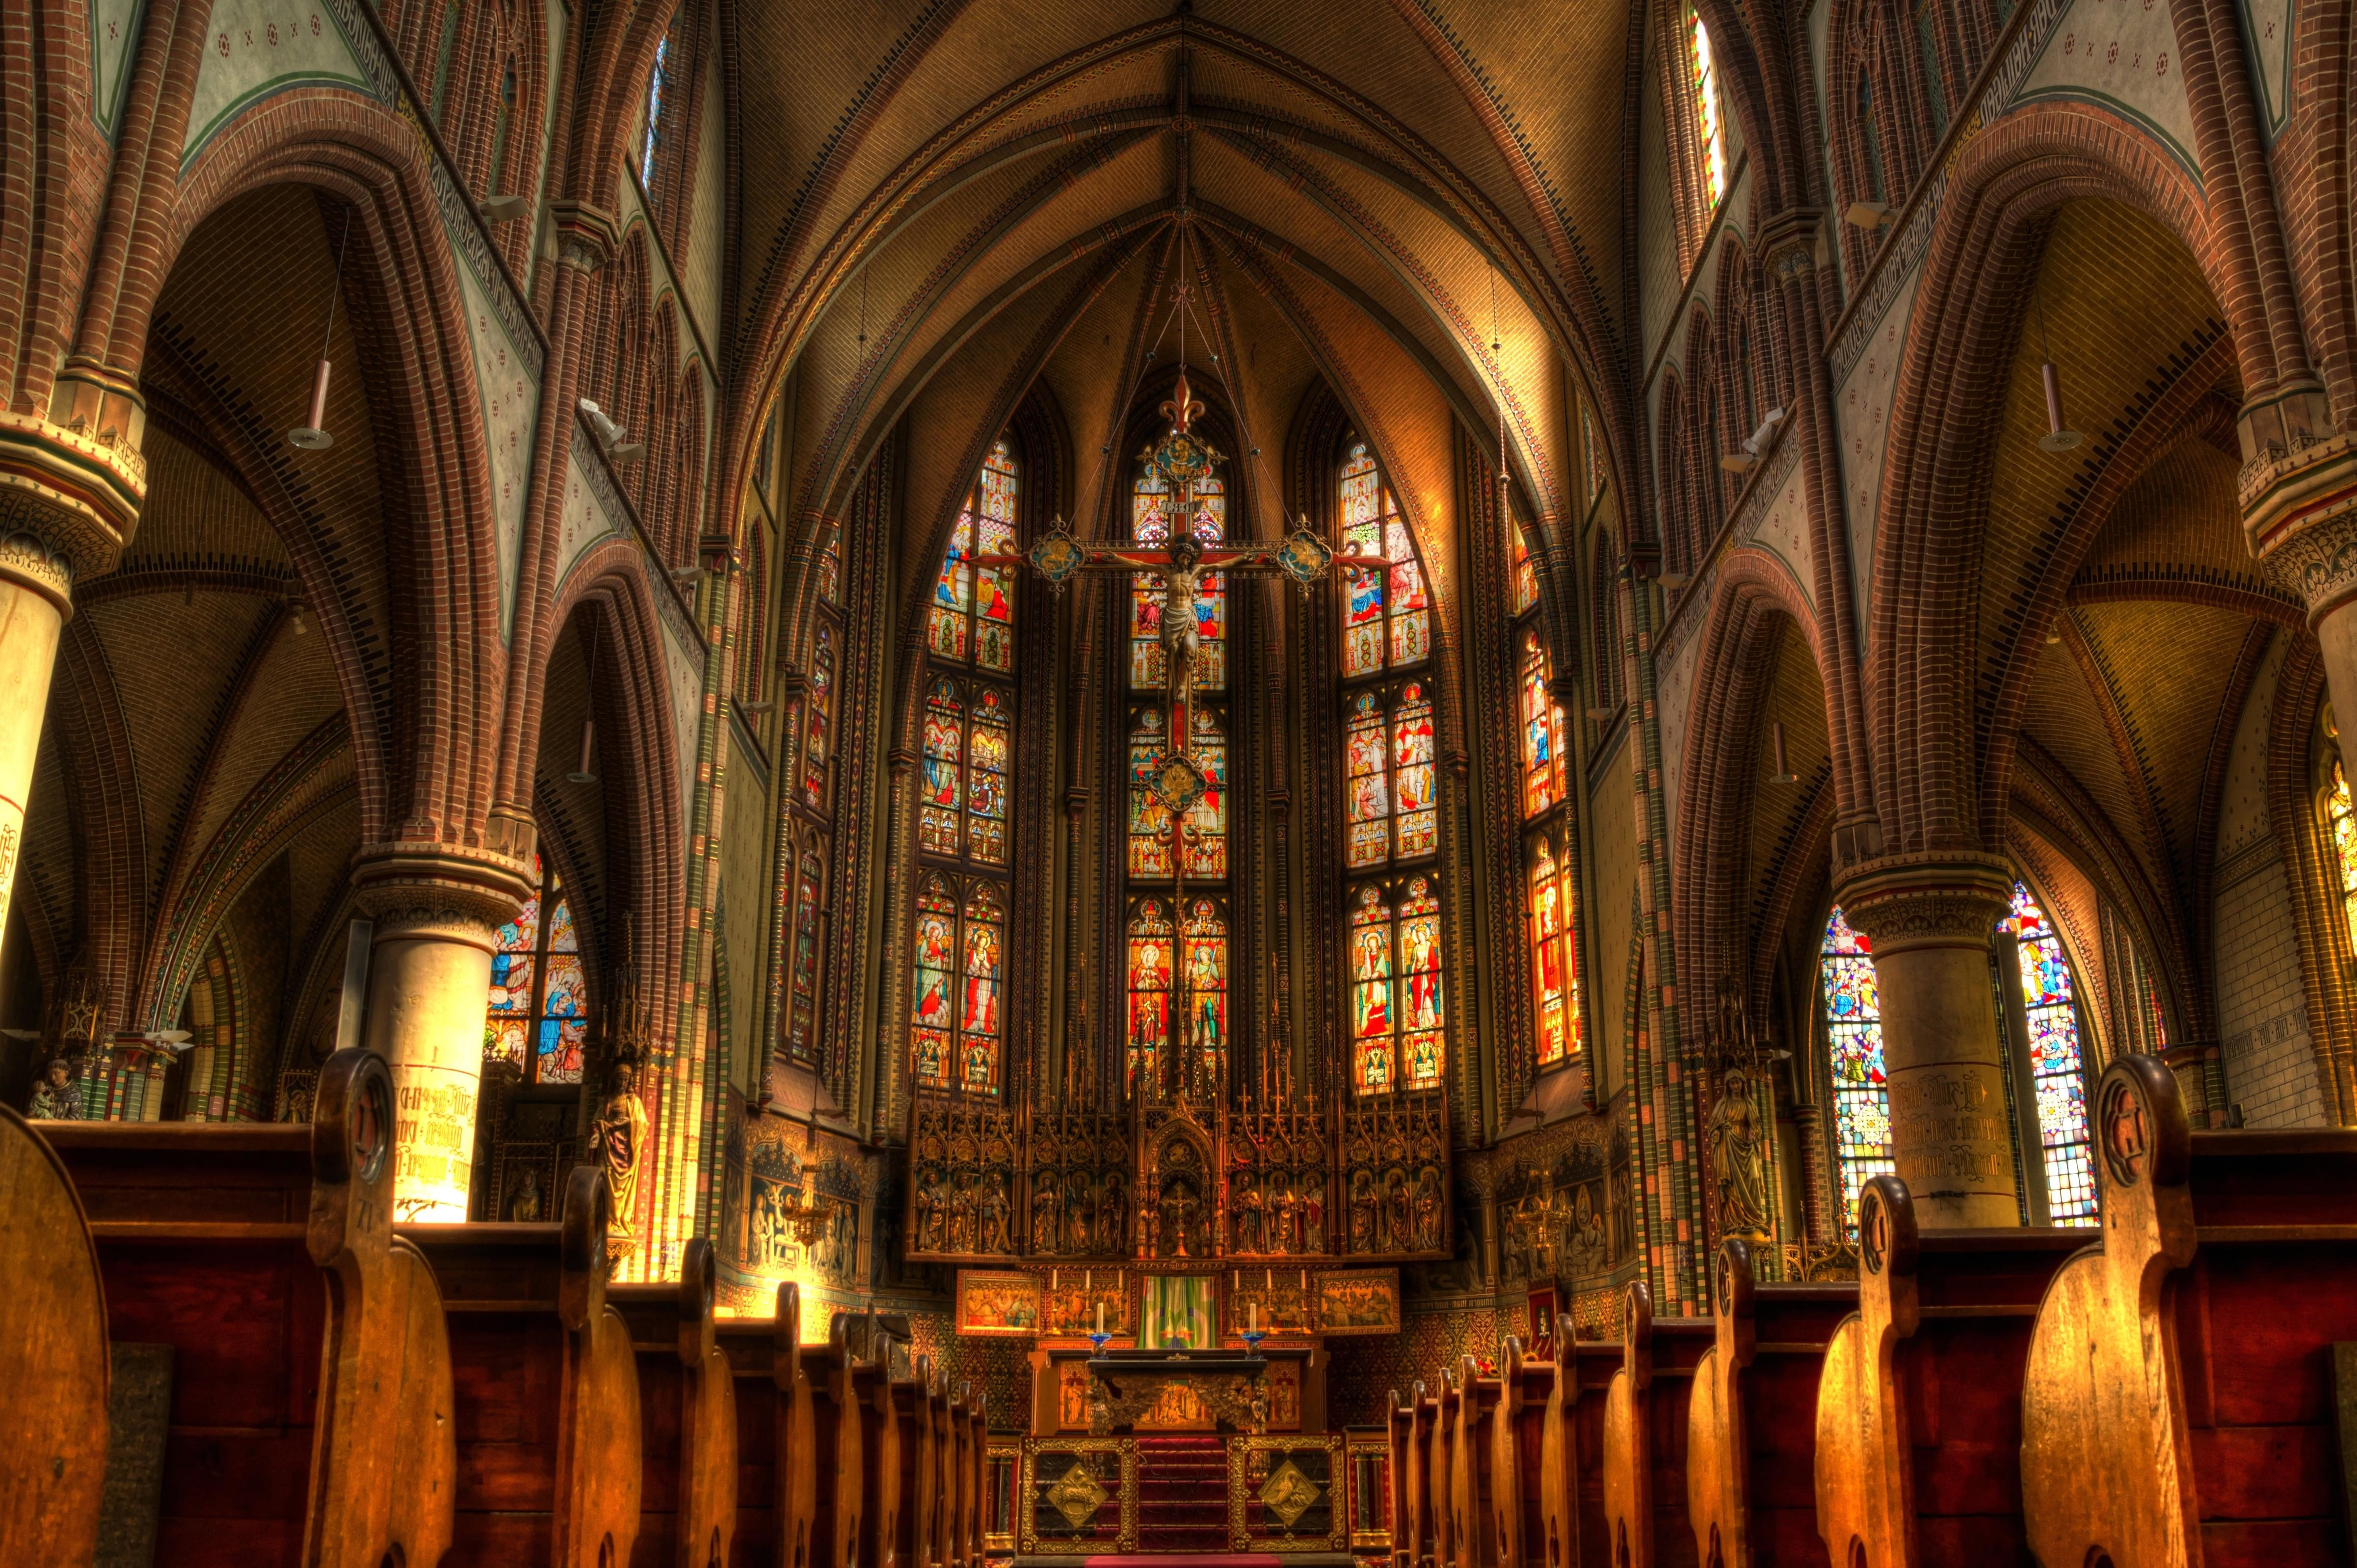 Church Cathedral Architecture Religion Art Dark Altar Ceiling